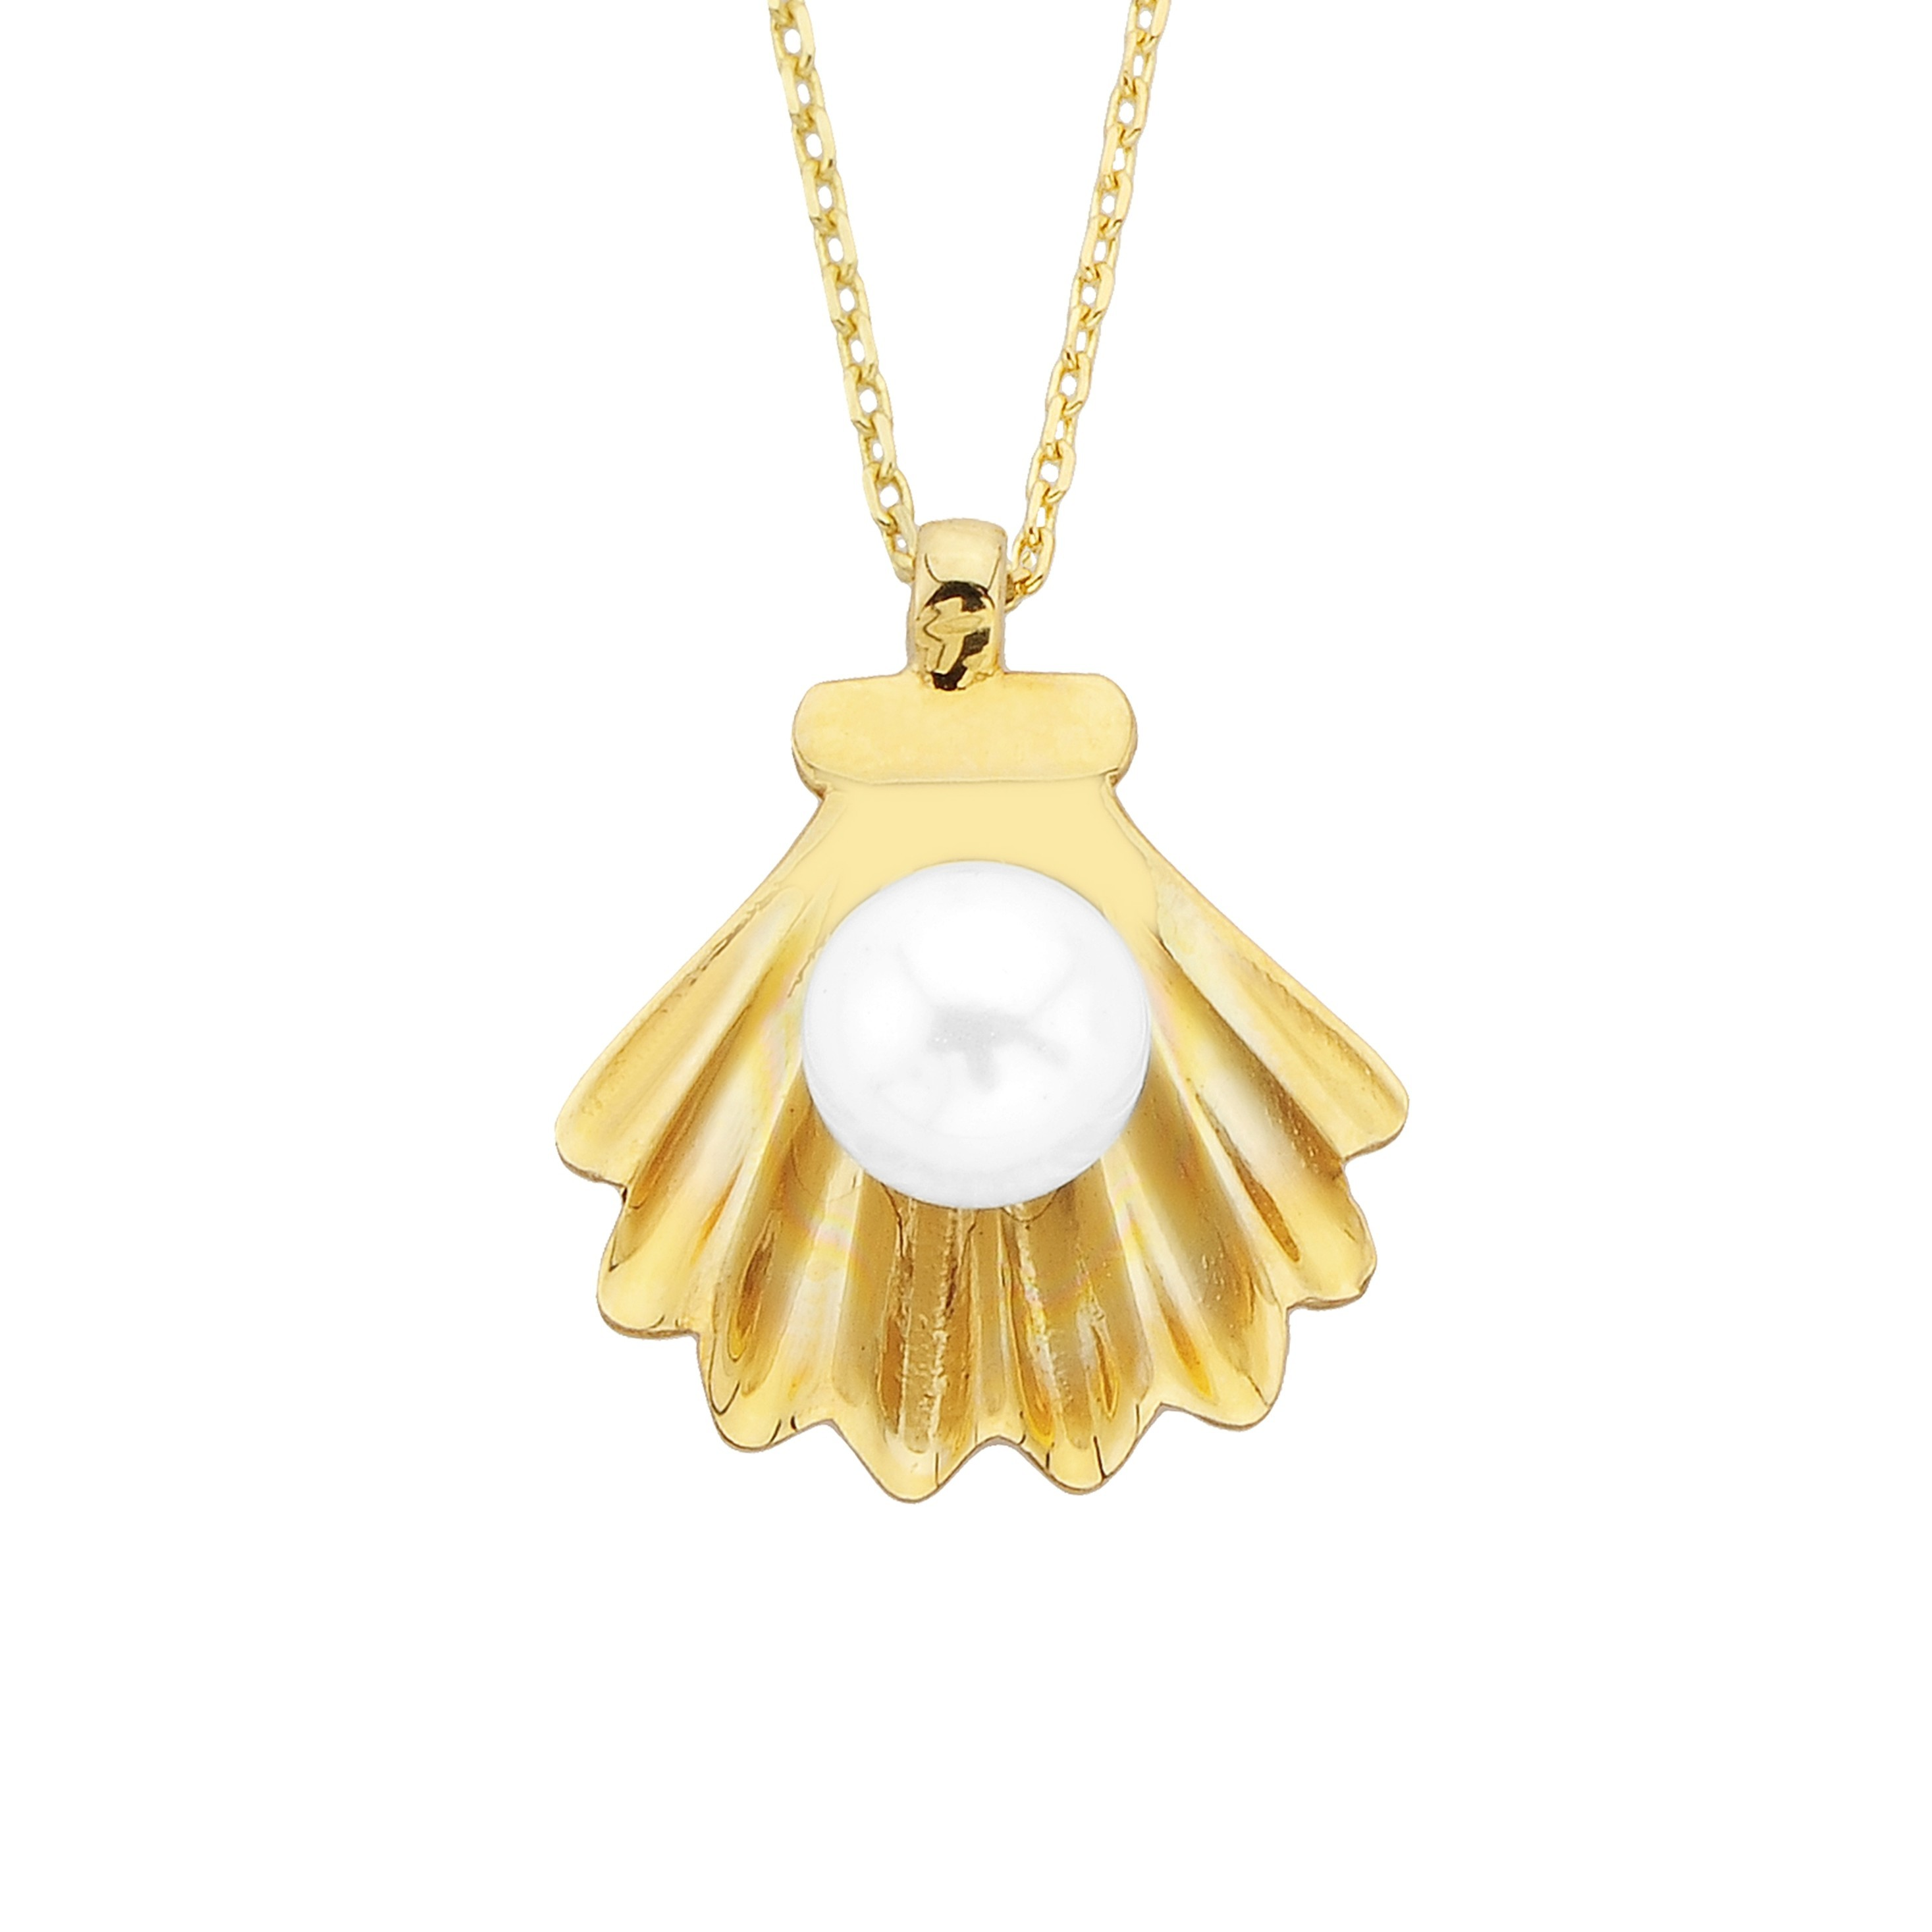 Edit product Add New Product name Permalink: https://latikajewelry.com/product/14k-real-solid-g…cklace-for-women/  p Word count: 138 Last edited by Owner on May 6, 2021 at 7:49 pm Preview Changes (opens in a new tab) Status: Published Edit Edit status Visibility: Public Edit Edit visibility Published on: May 30, 2020 at 07:33 Edit Edit date and time Catalog visibility: Shop and search results Edit Copy to a new draft Move to Trash All categories Most Used Uncategorized Bracelets Earrings Evil Eye Kids Nature Necklaces Pearls Personalized Rings + Add new category Add new tag Separate tags with commas gold seashell necklace Pearl Necklace seashell necklace Shell Necklaces for Women Facebook ID: 3995927463814365 Variant IDs: 2350: 3103715736386307 2353: 4066957910043251 2356: 3511506882194398 2351: 2442712222497790 2354: 2794869307302831 2357: 2838296106282366 2352: 3245692892188809 2355: 3097622740320071 2358: 3042391872543314 Reset Facebook metadata Delete product(s) on Facebook Select product layout 14K Real Solid Gold Sea Shell Design Decoreted with Pearl Charm Dainty Pendant Necklace for women Click the image to edit or update Remove product image Enter a YouTube or Vimeo URL 14K Real Solid Gold Seashell Design Decoreted with Pearl Charm Cute Dainty Delicate Trendy Pendant Necklace Best Birthday Gift for Women Jewelry Girlfriend Hawaii Beach Shell 14K Real Solid Gold Sea Shell Design Decoreted with Pearl Charm Dainty Pendant Necklace for women 14K Real Solid Gold Sea Shell Design Decoreted with Pearl Charm Dainty Pendant Necklace for women 14K Real Solid Gold Sea Shell Design Decoreted with Pearl Charm Dainty Pendant Necklace for women 14K Real Solid Gold Sea Shell Design Decoreted with Pearl Charm Dainty Pendant Necklace for women 14K Real Solid Gold Sea Shell Design Decoreted with Pearl Charm Dainty Pendant Necklace for women 14K Real Solid Gold Sea Shell Design Decoreted with Pearl Charm Dainty Pendant Necklace for women 14K Real Solid Gold Seashell Design Deco